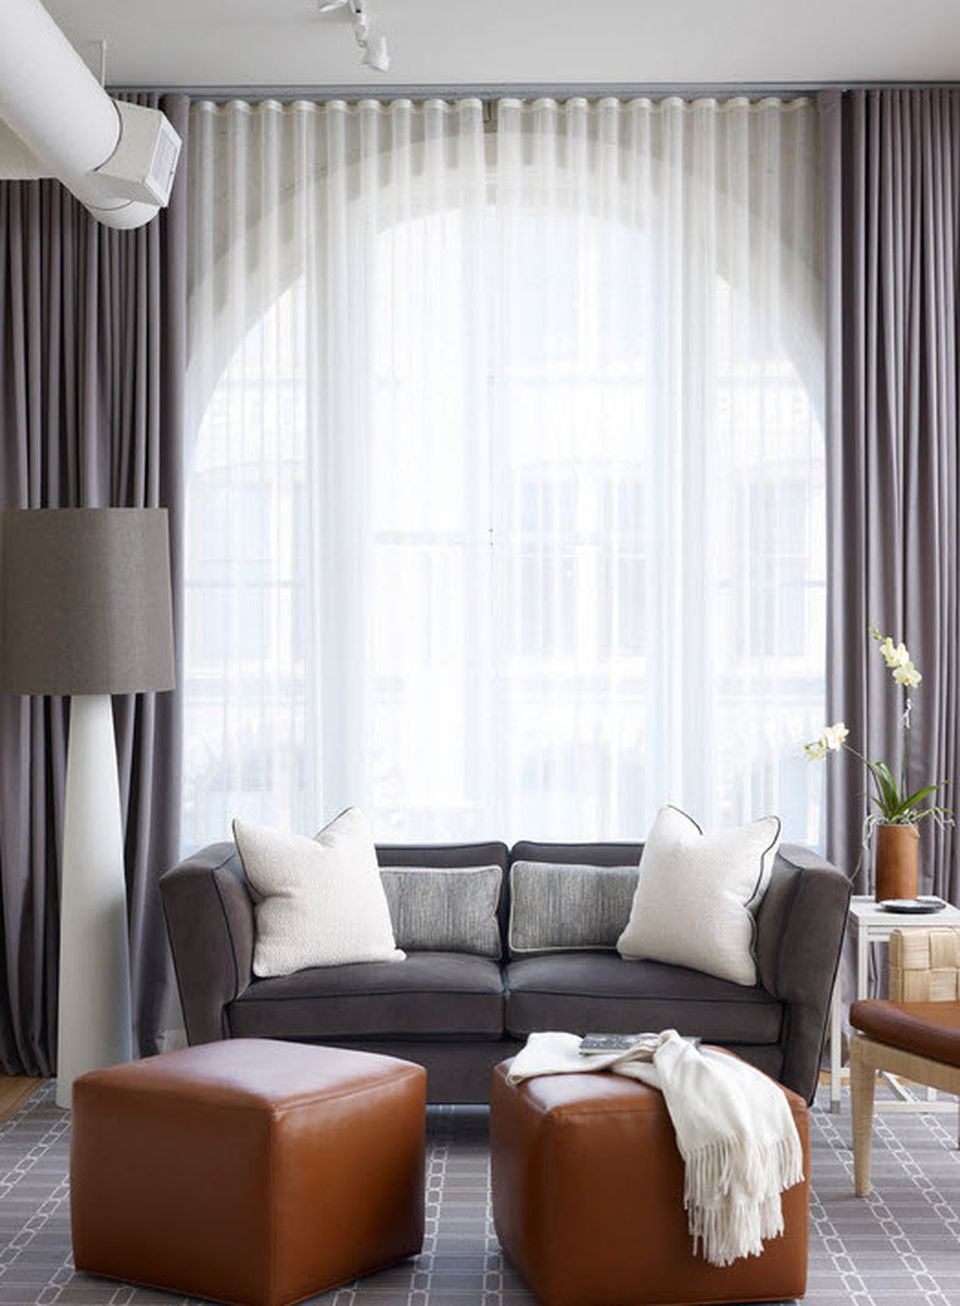 Awesome Tall Curtains Ideas for Living Room 39 - Hoommy.com